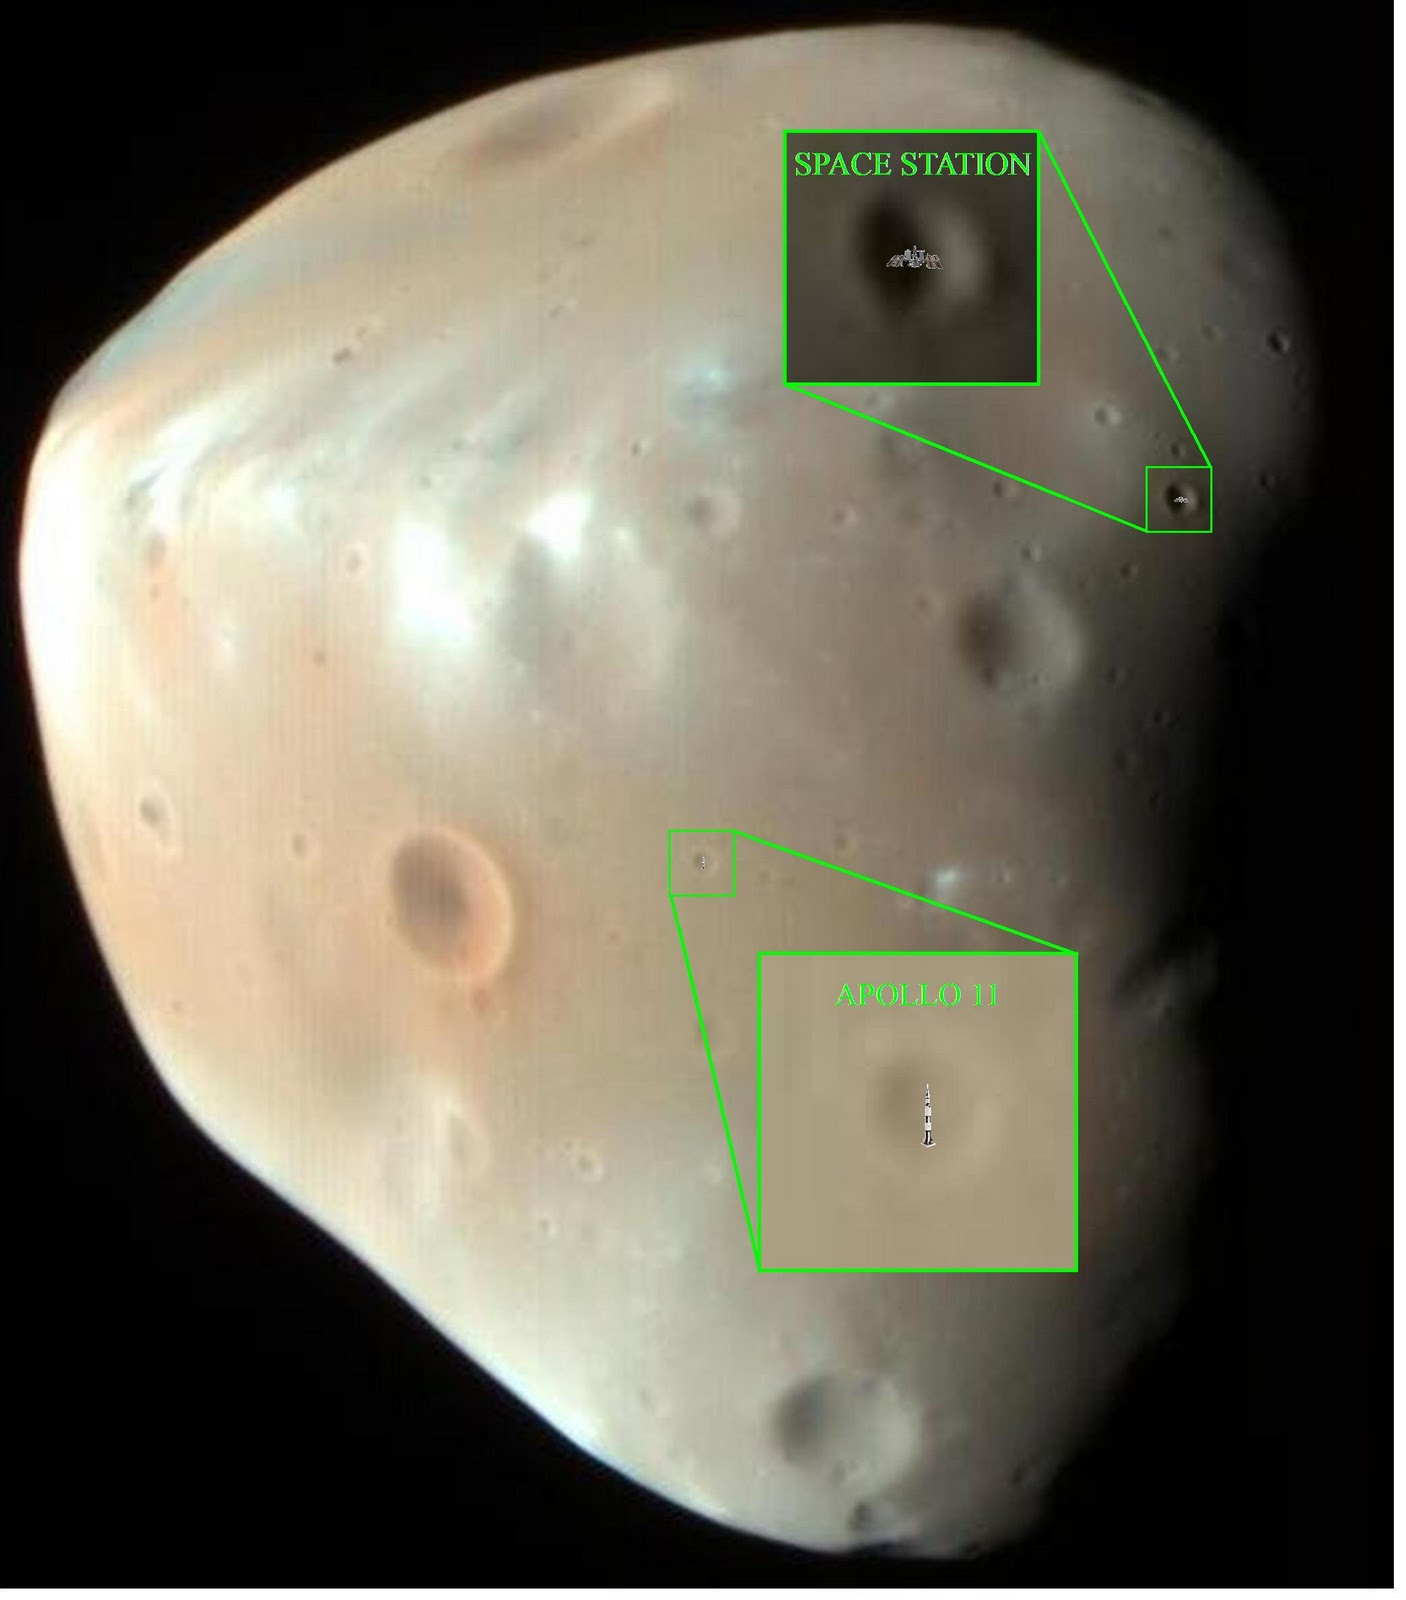 Mars Moons: Facts About Deimos